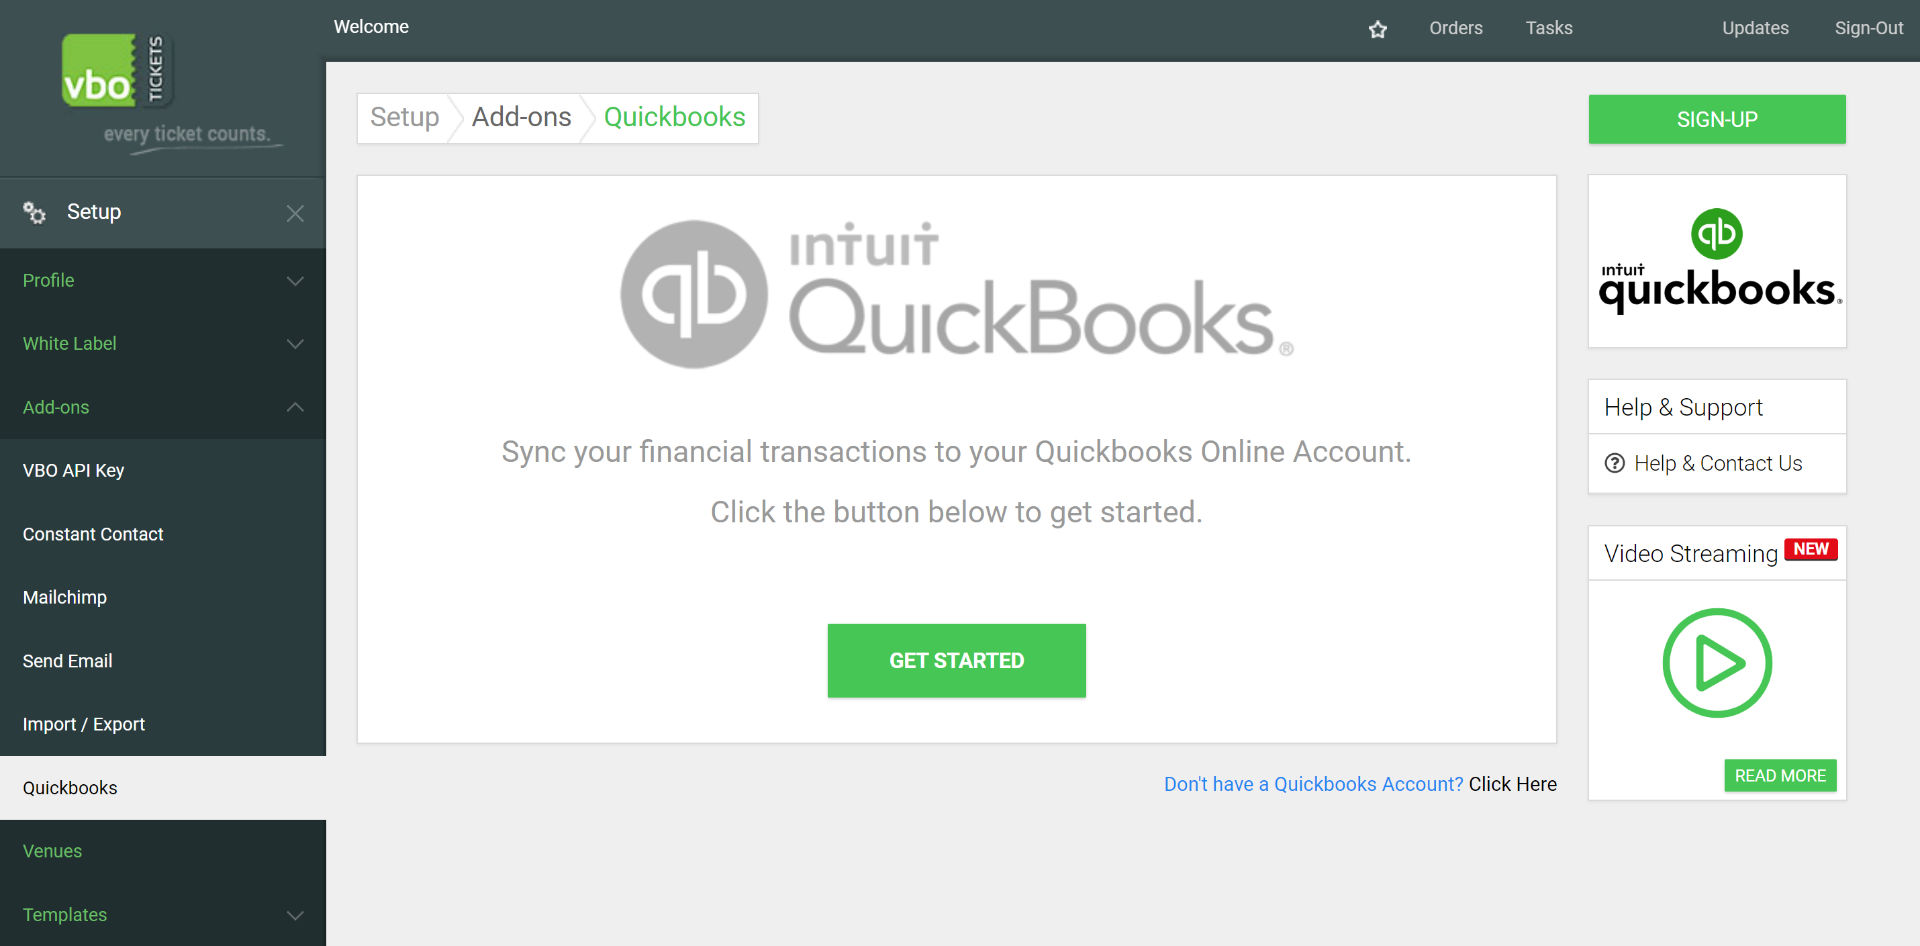 Quickbooks VBO connection